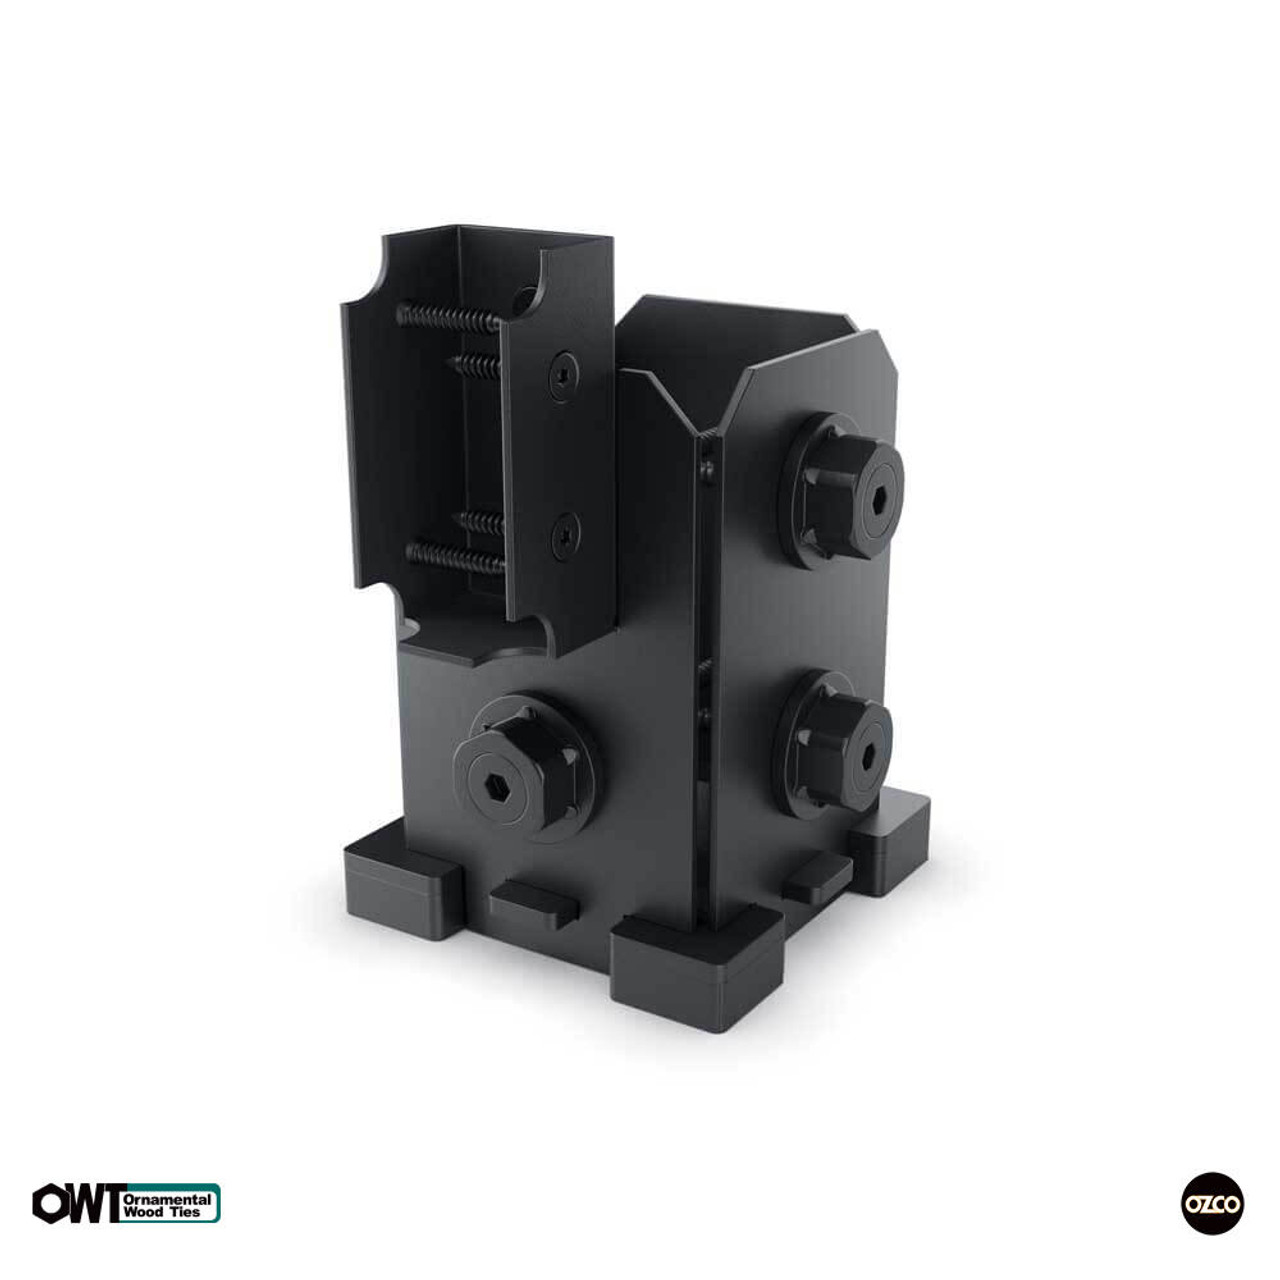 OZCO OWT 4X4-SRS-IW 4x4 Post Base Single Rail Saddle